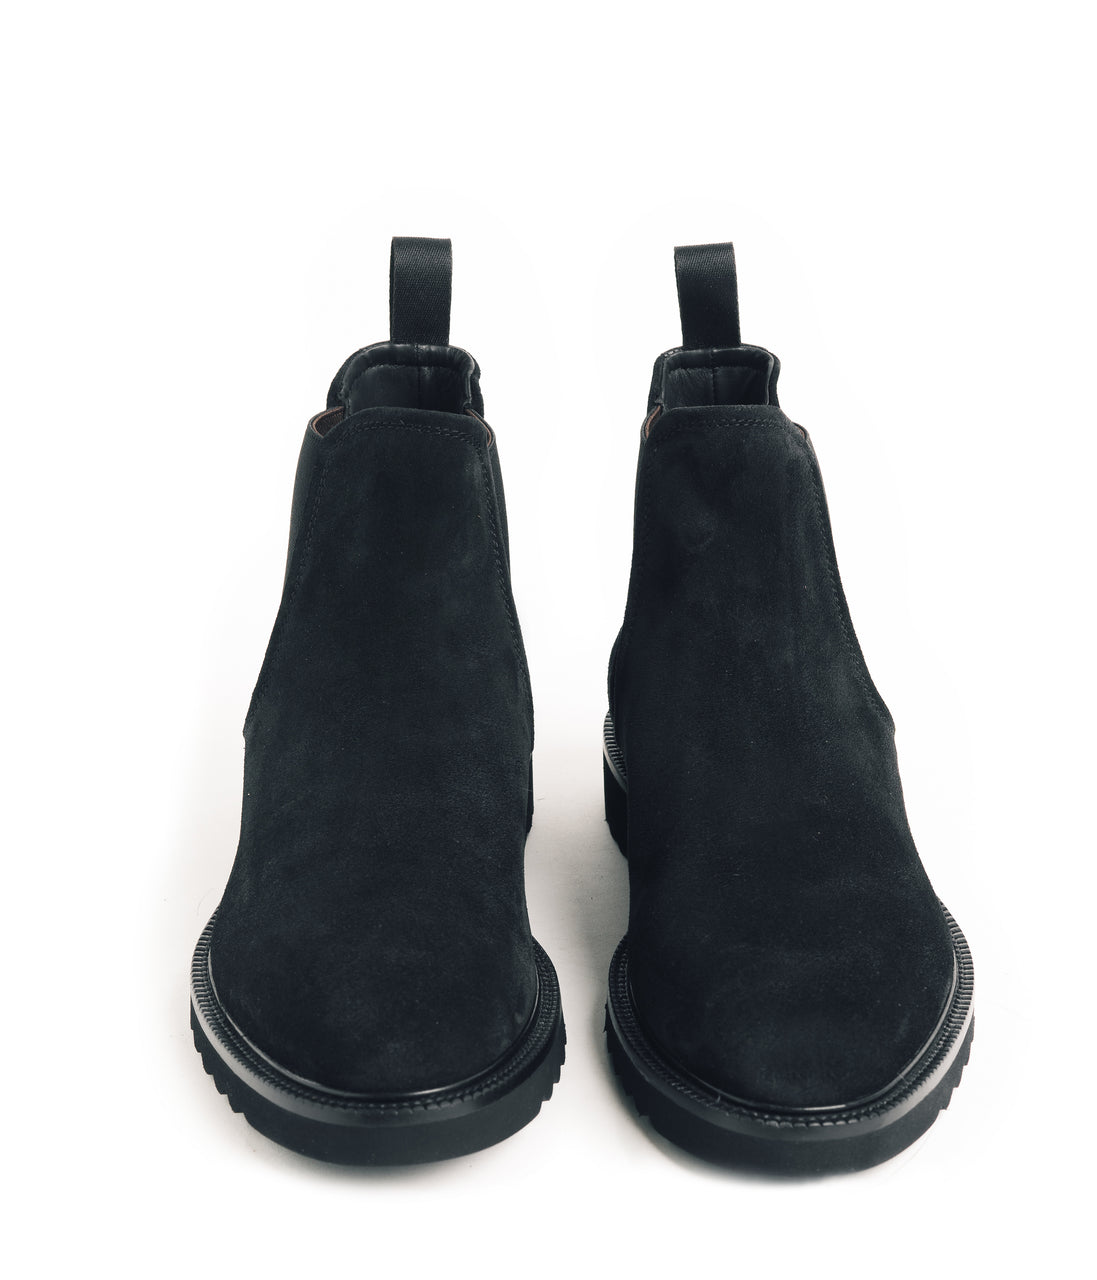 Chelsea Nubuck Boot - Black - Good Man Brand - Chelsea Nubuck Boot - Black - Footwear - Good Man Brand